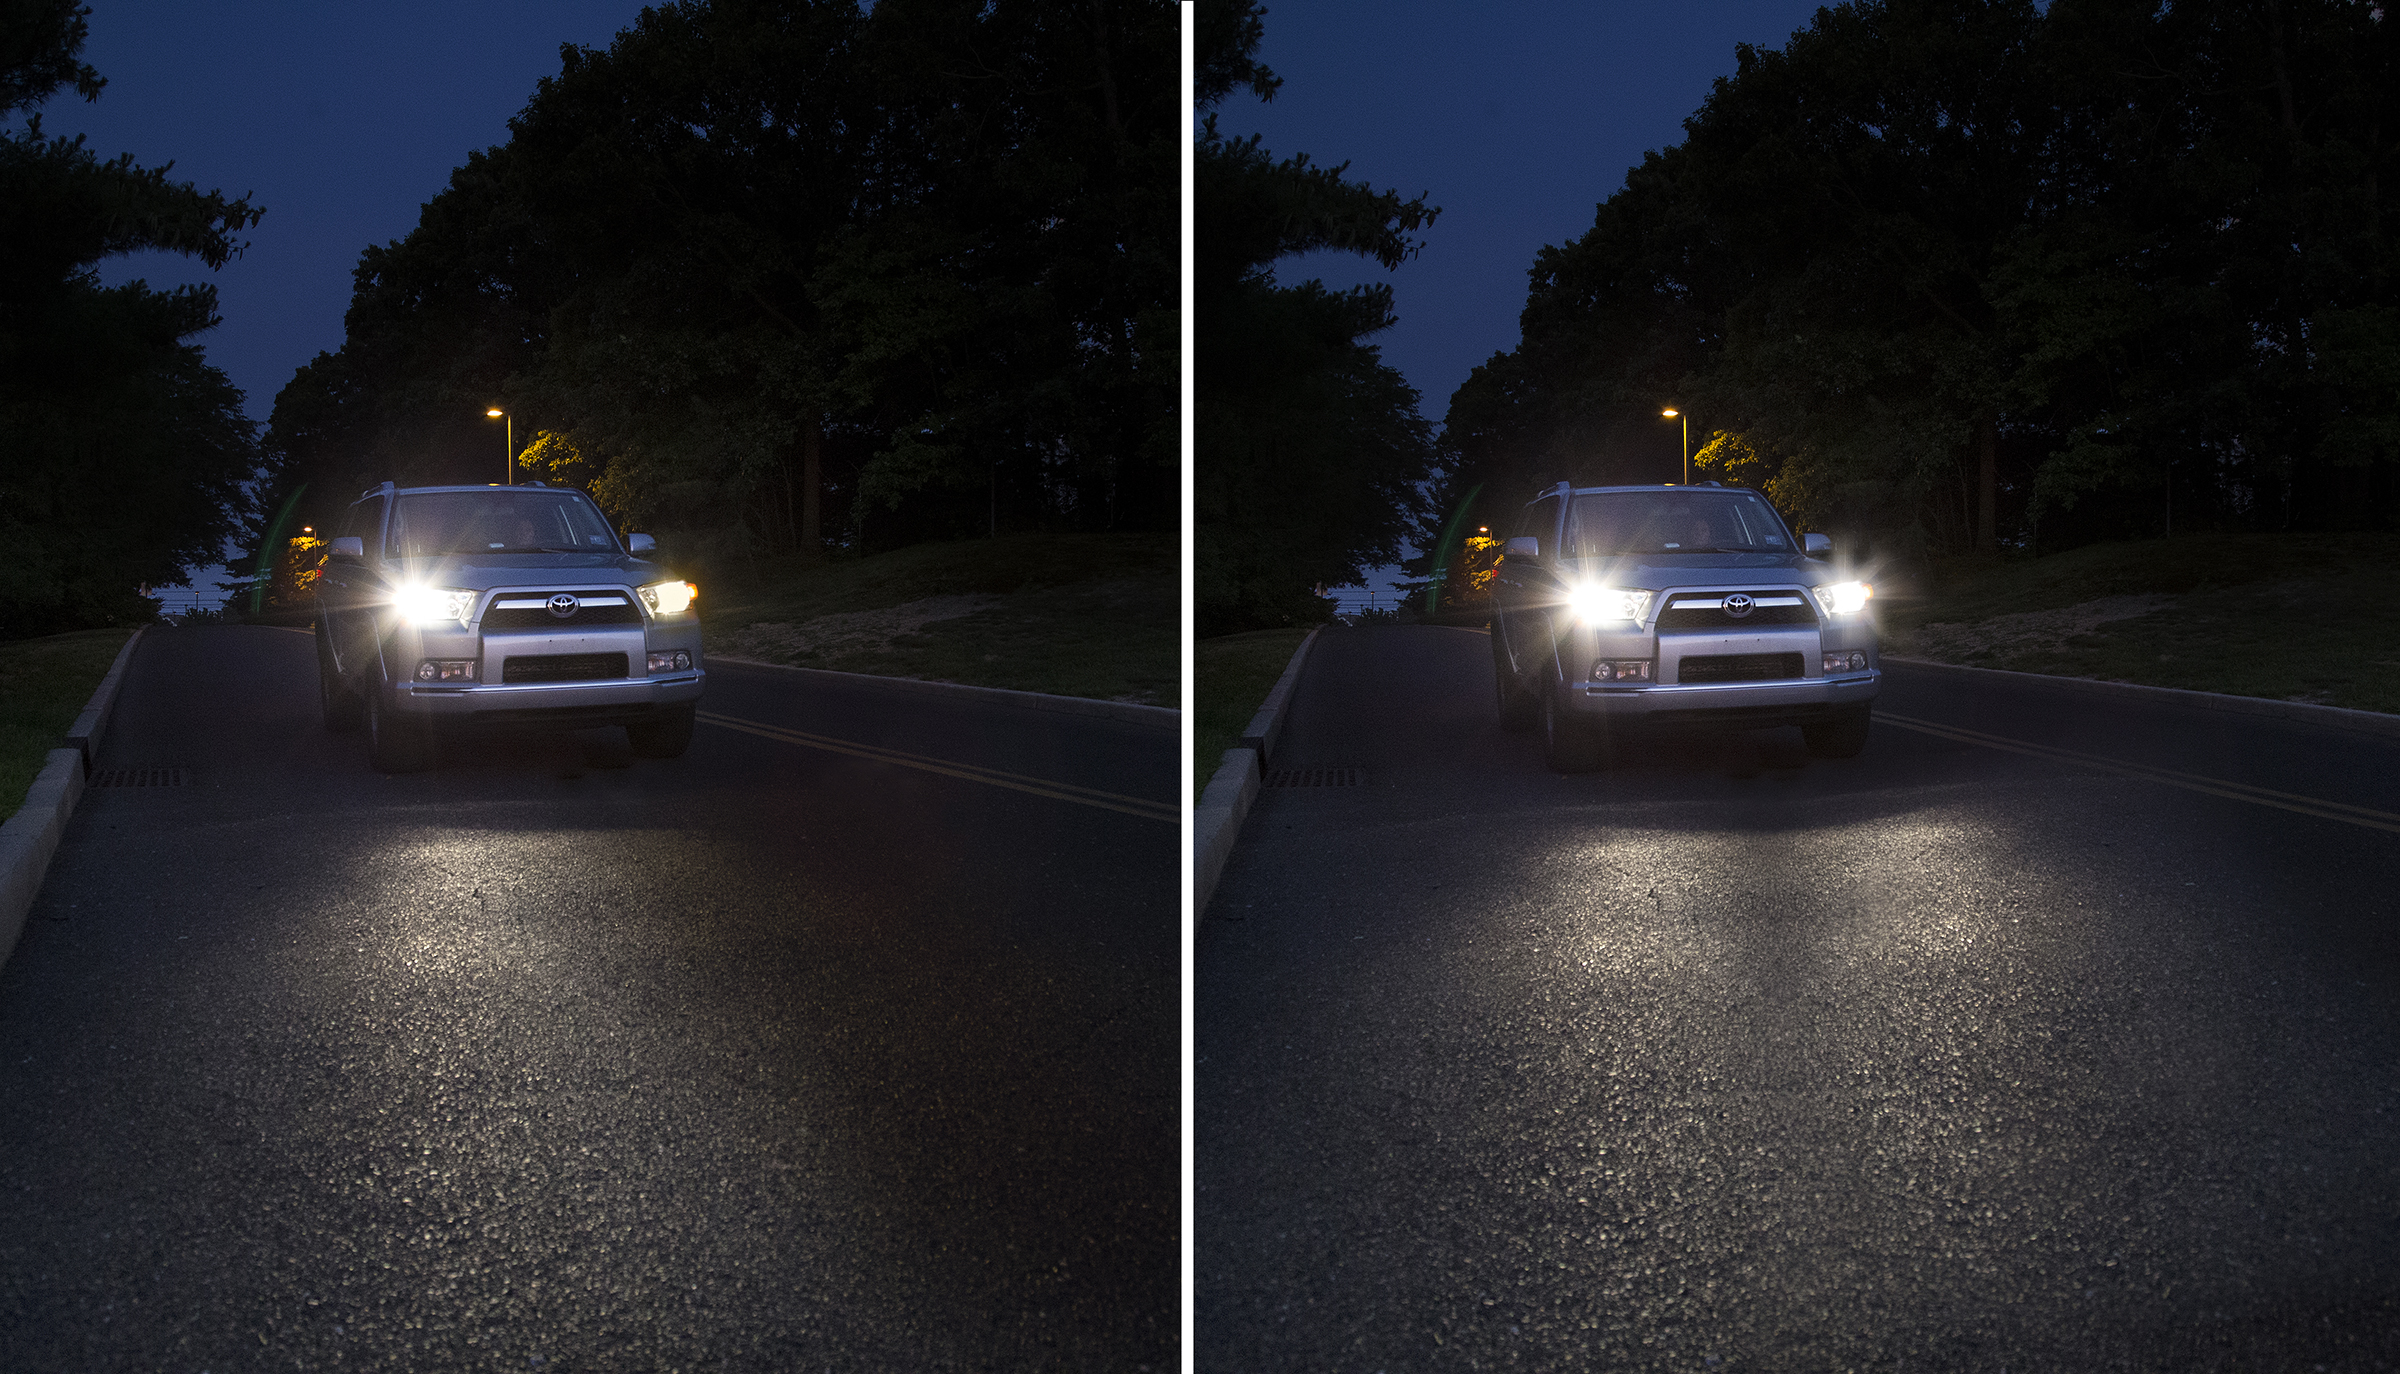 Philips 'Change in Pairs' Lighting Campaign Improves Driver Safety